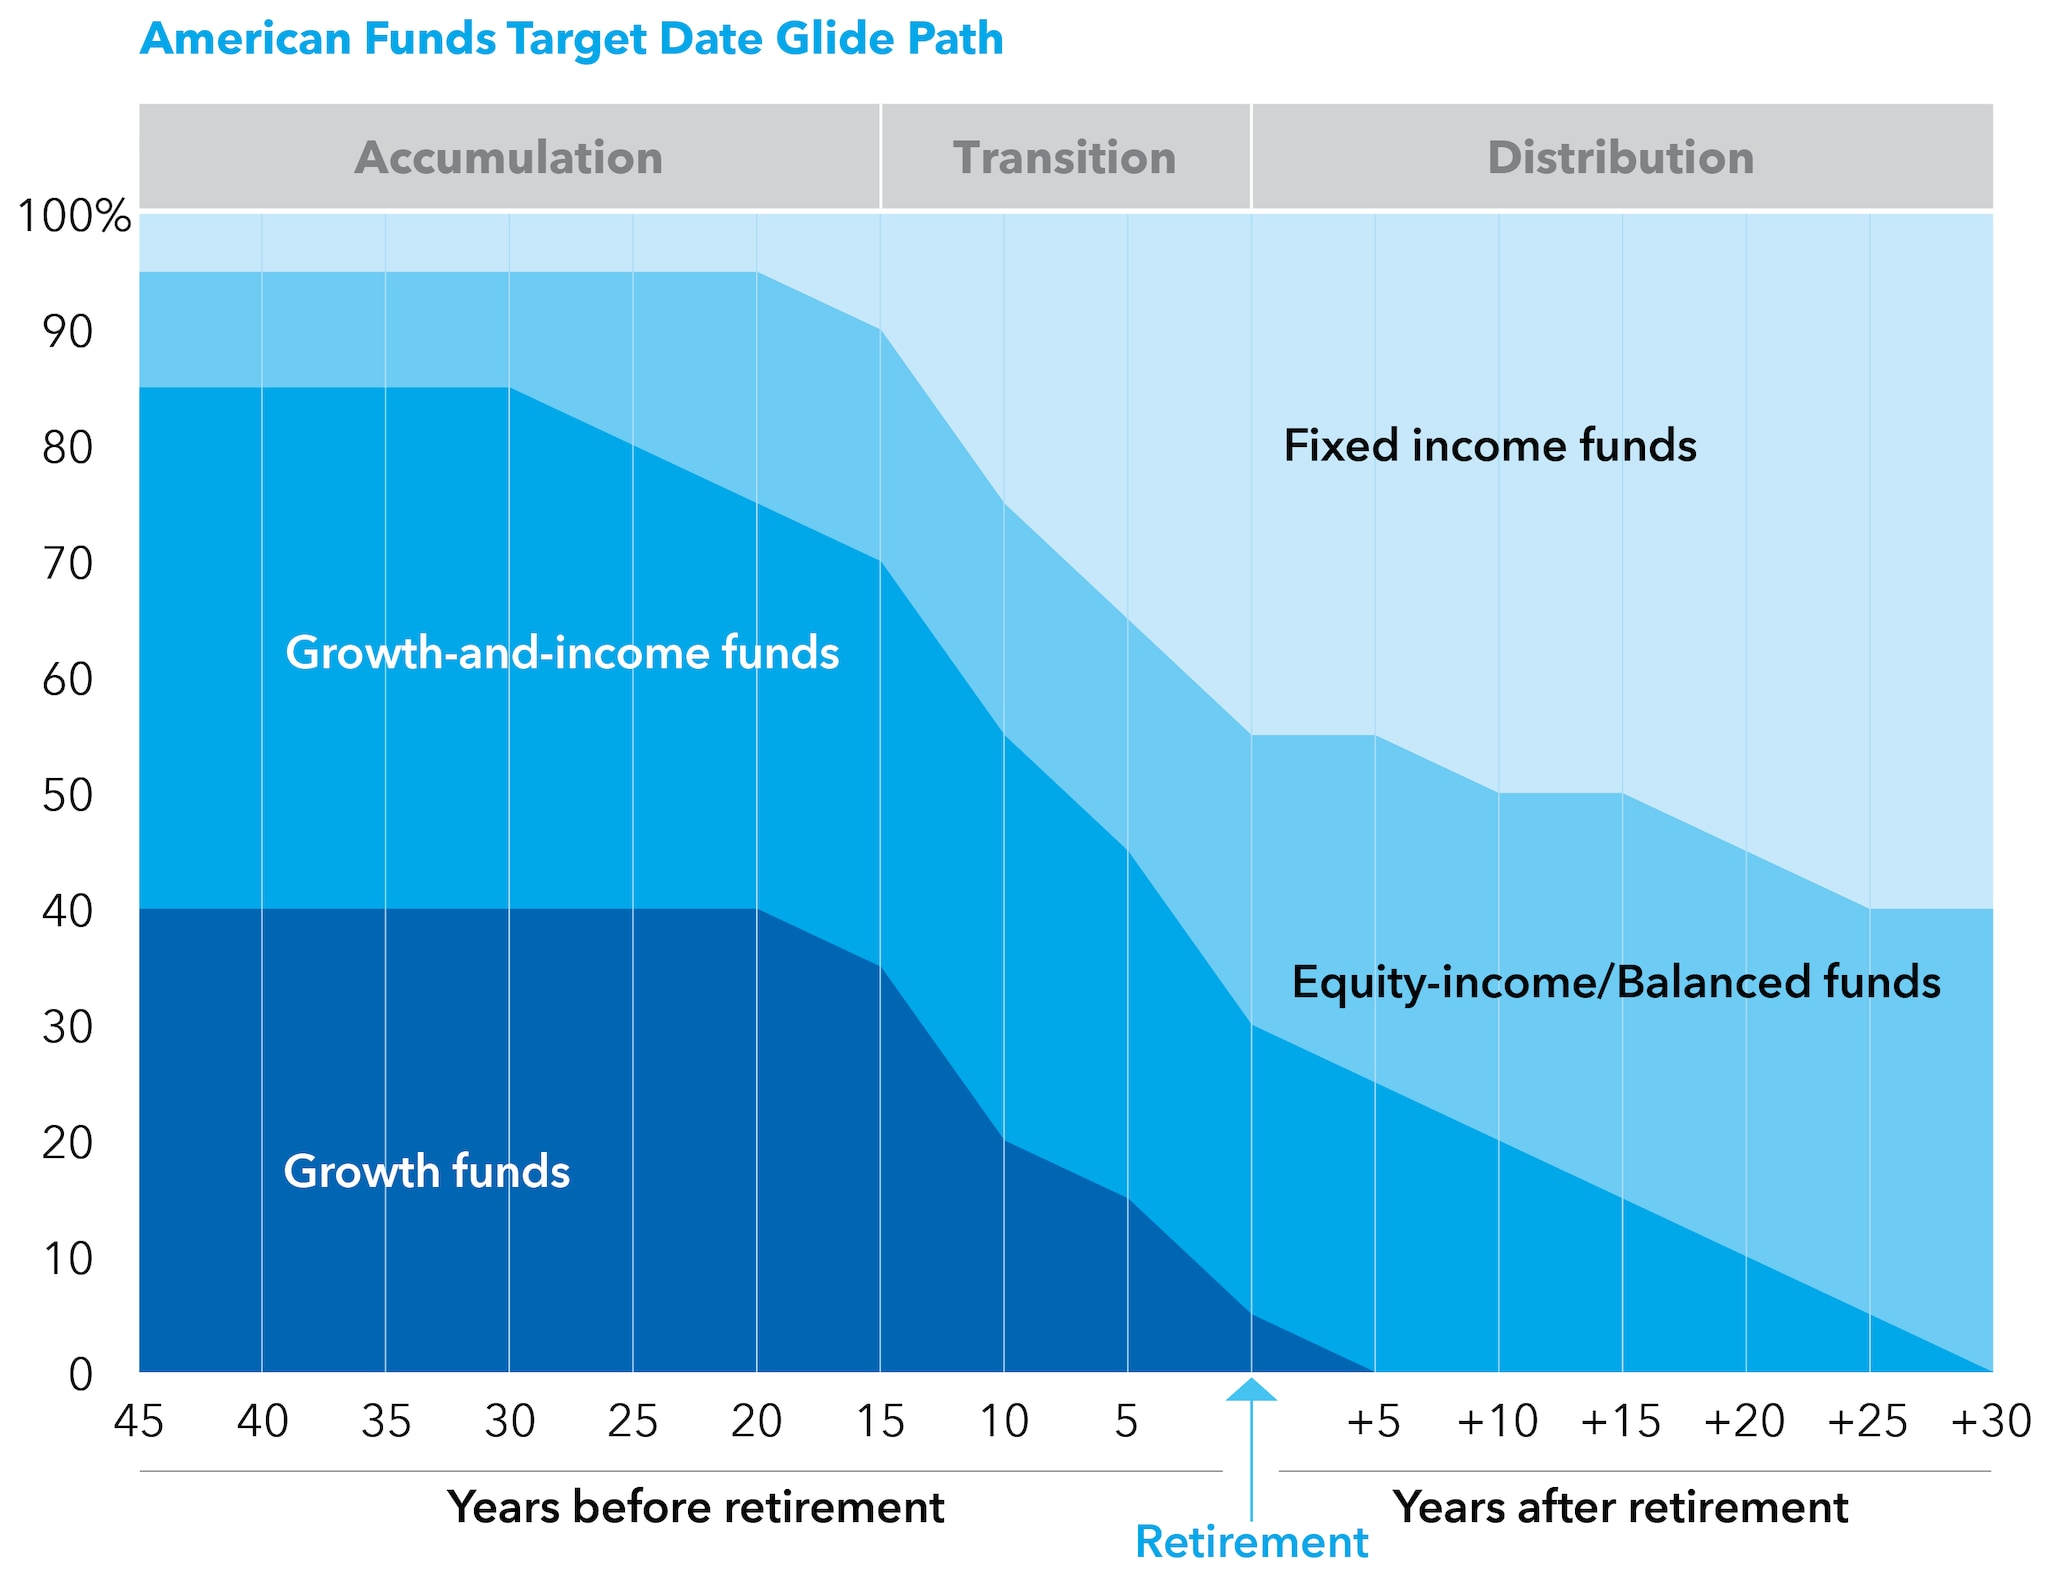 Image highlights glide path for American Funds Target Date Retirement Series.